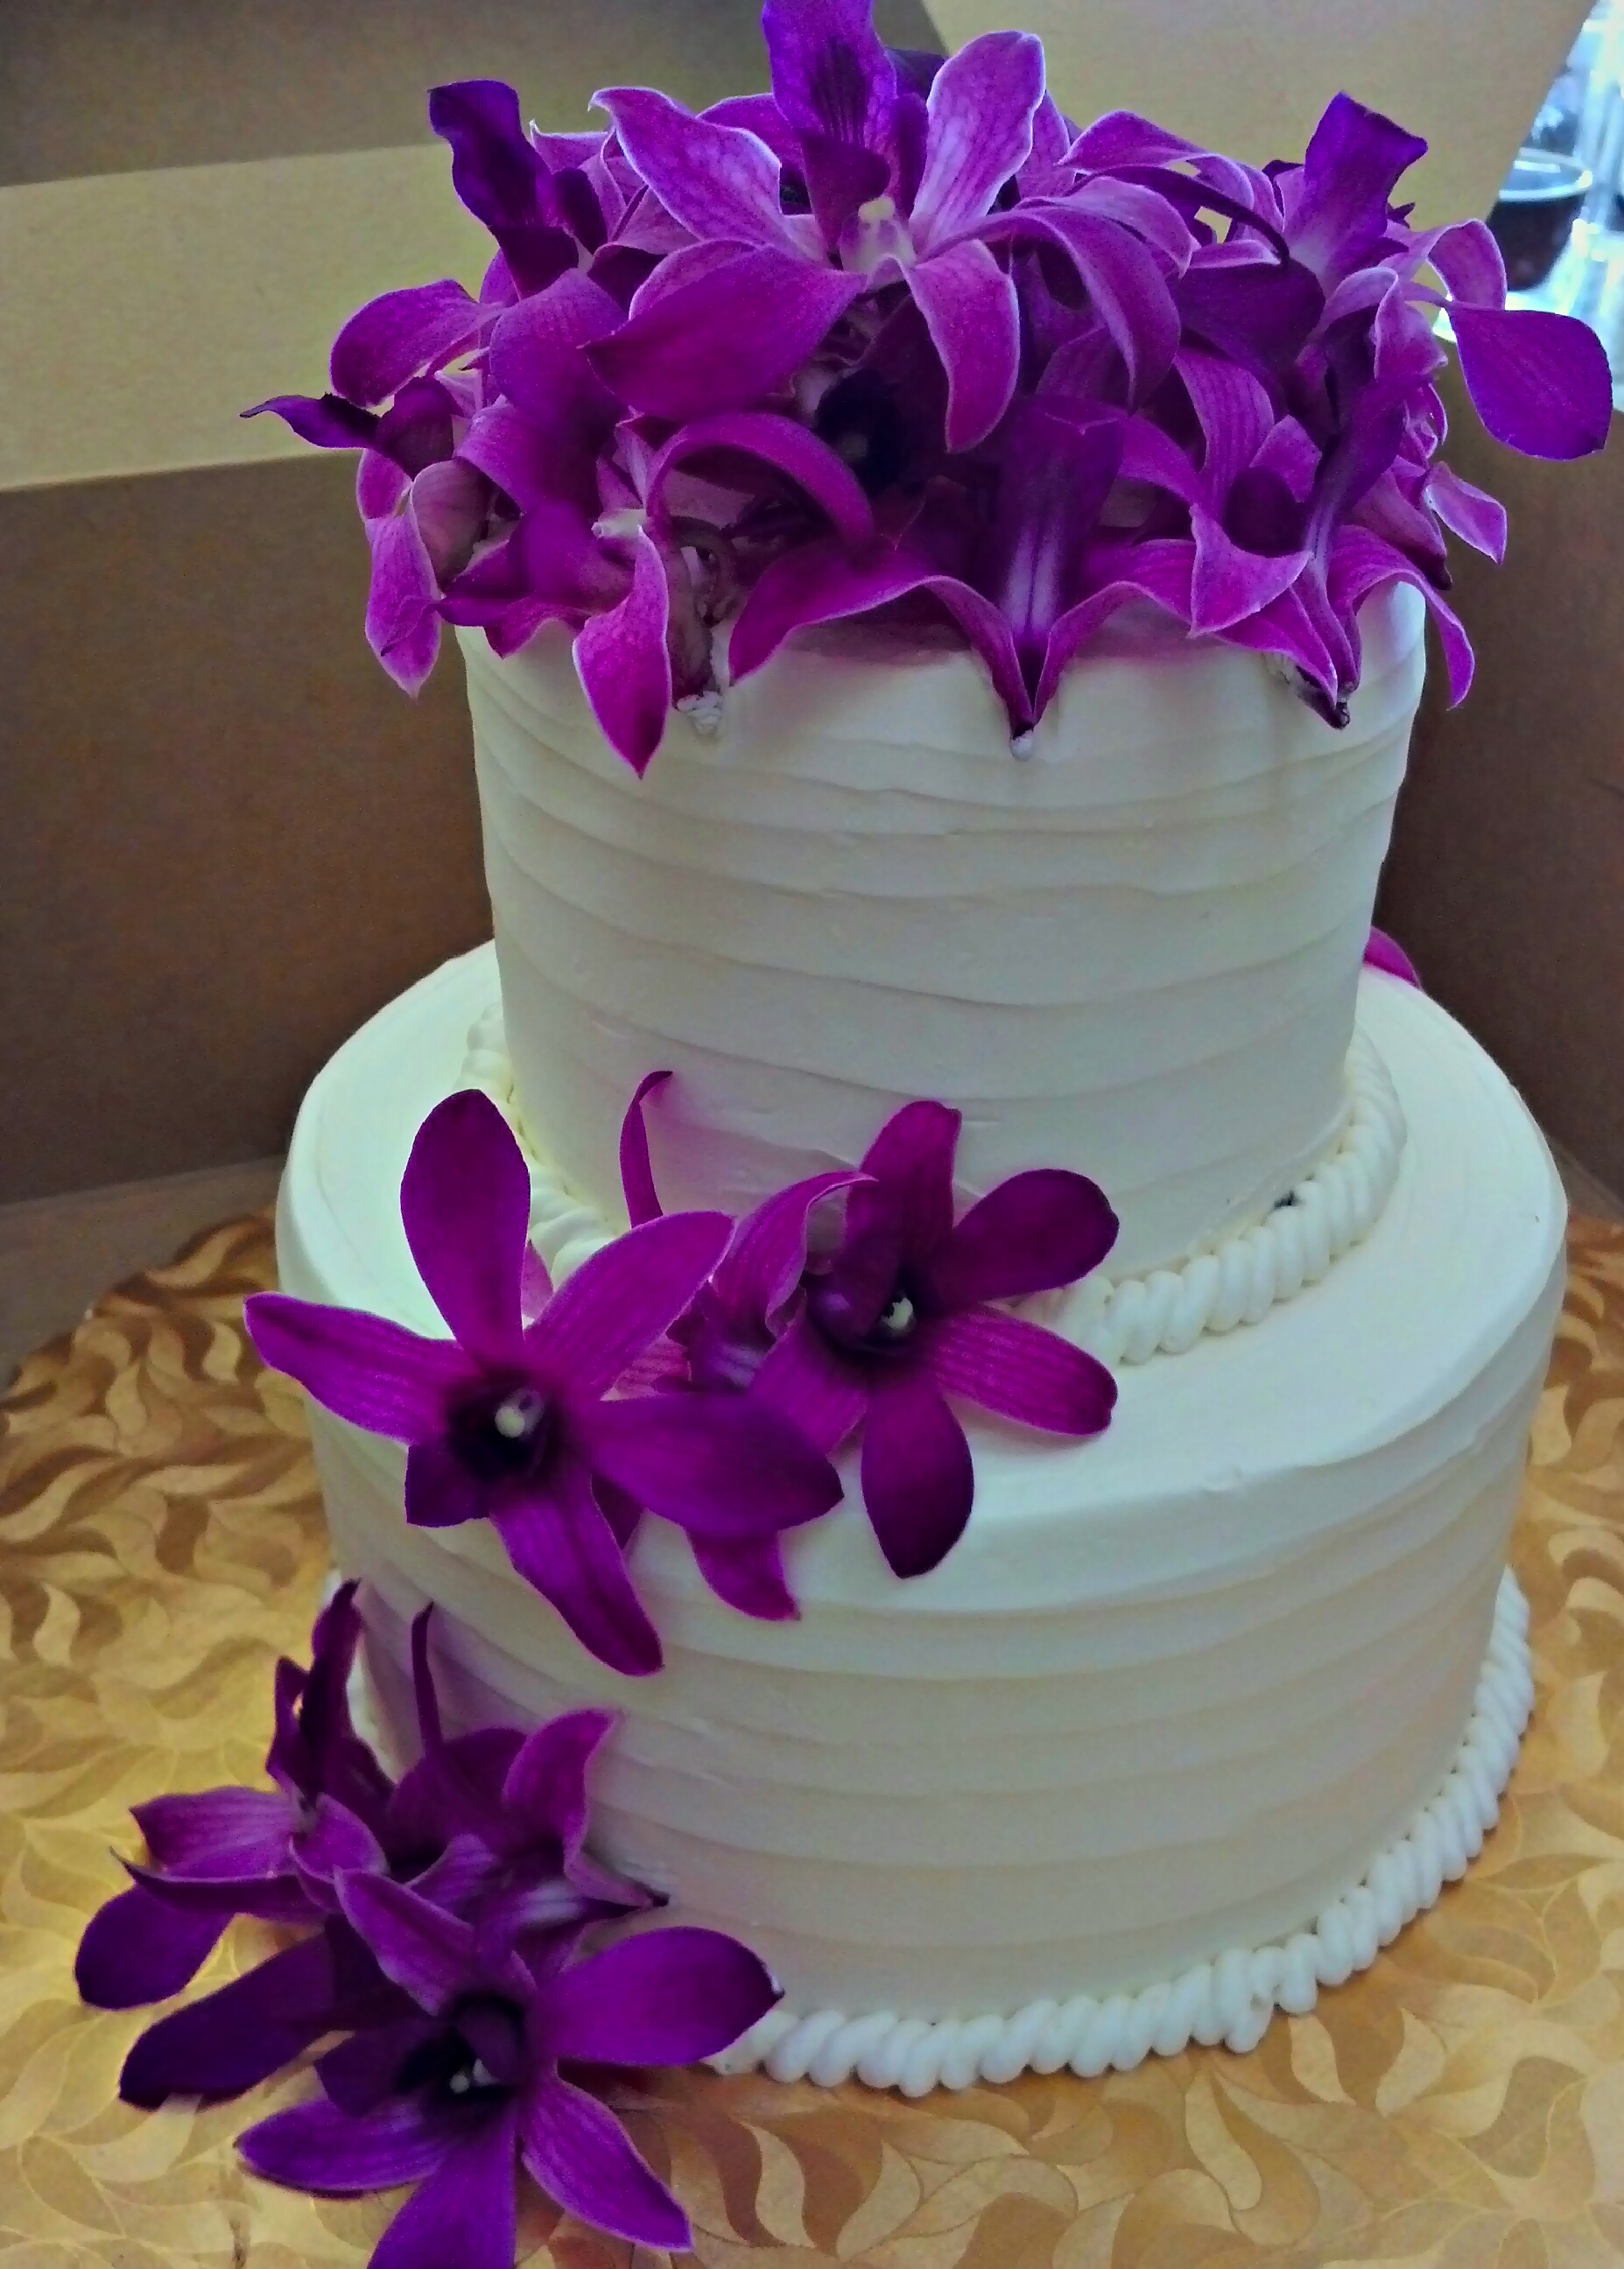 Small wedding cake.jpg